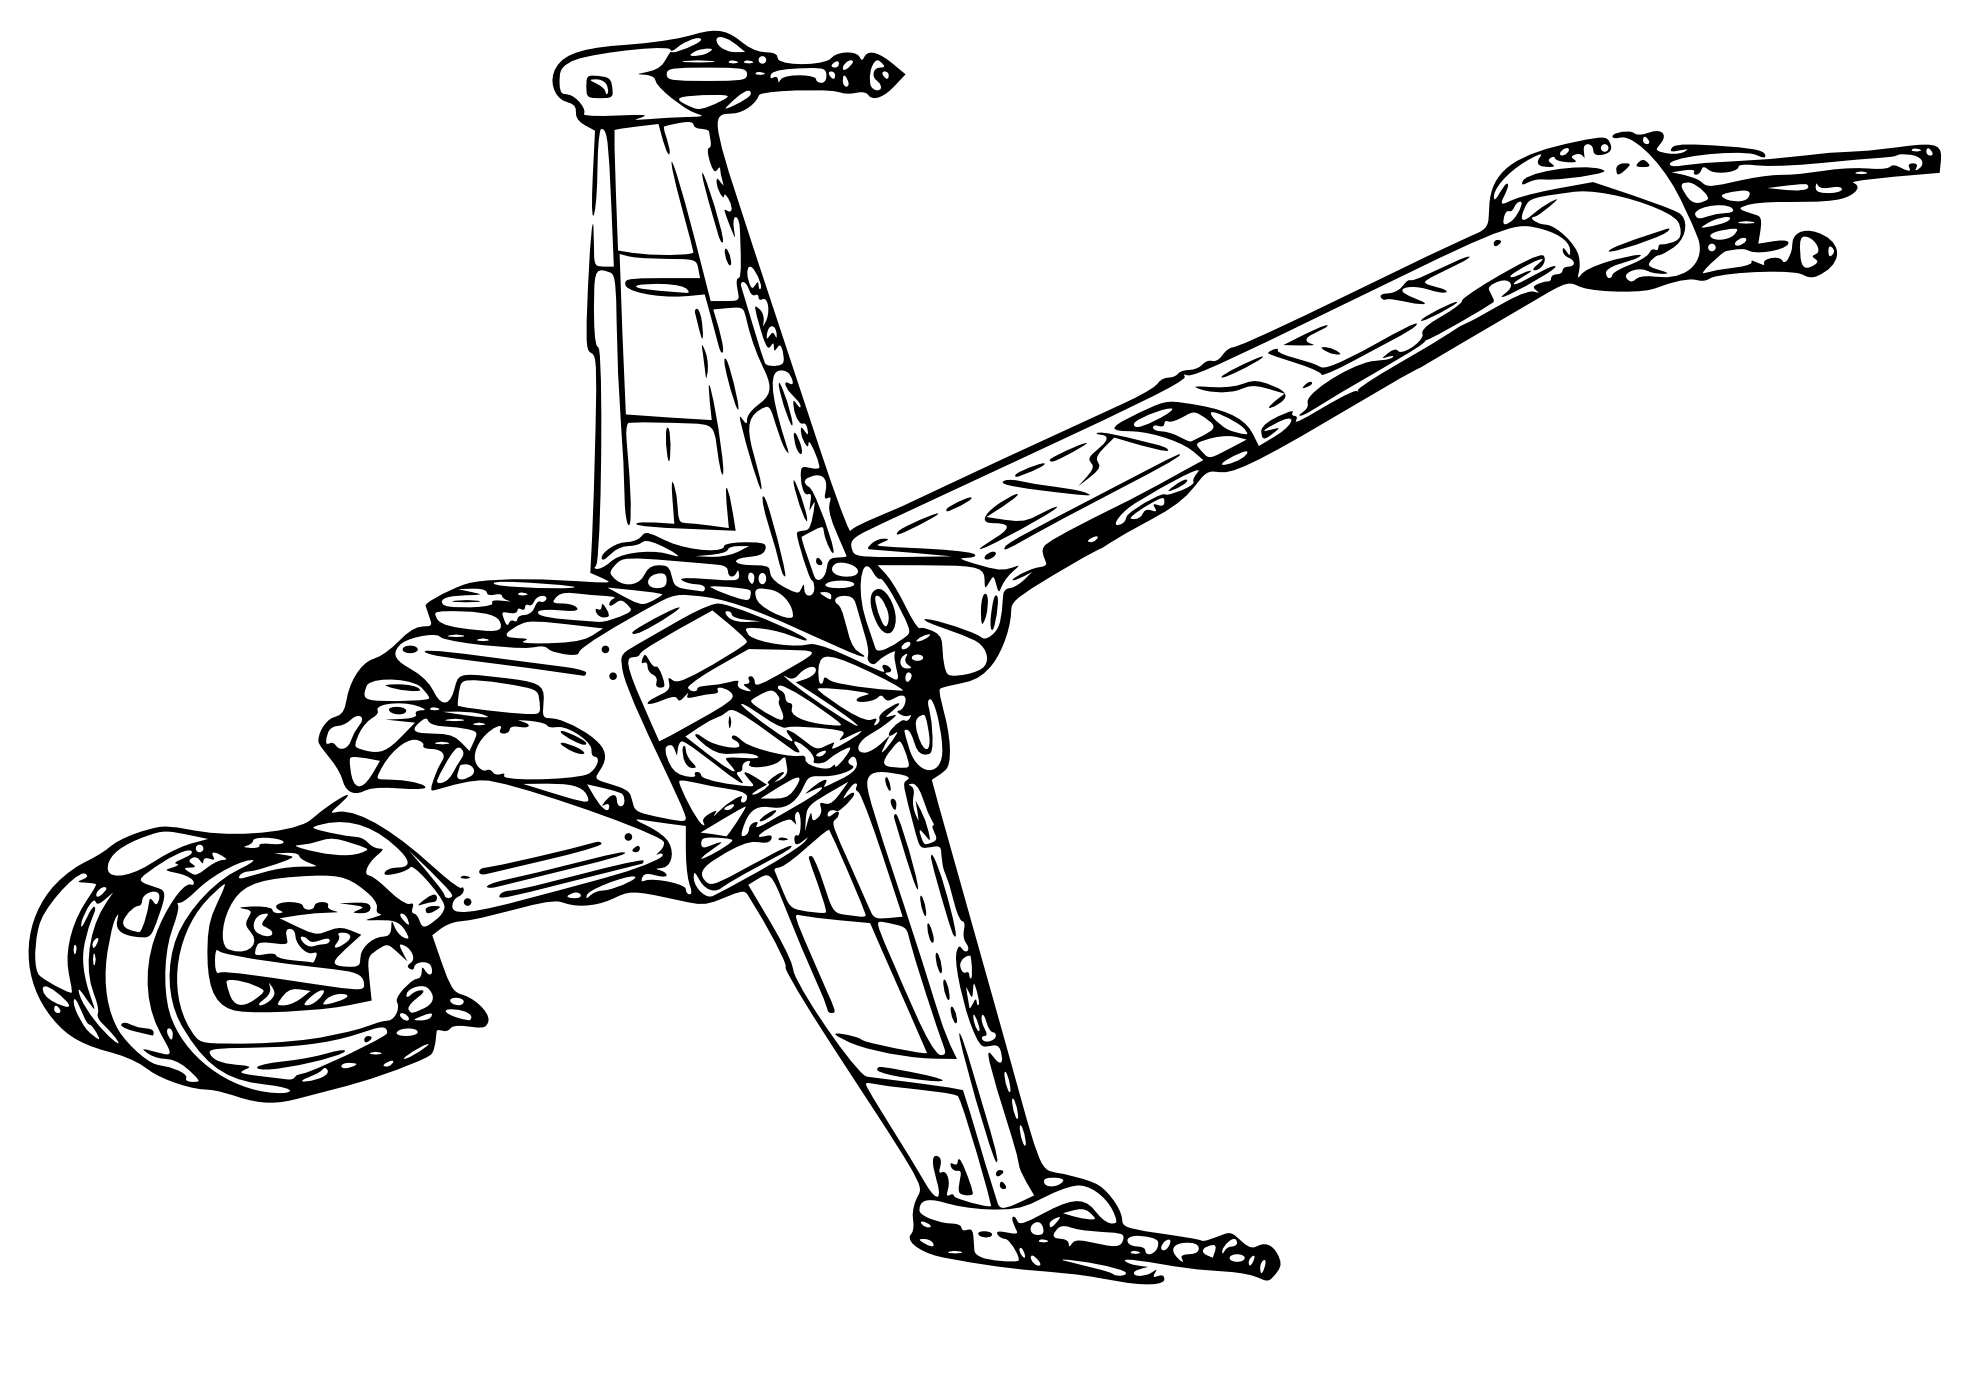 Coloring page x wing - Star